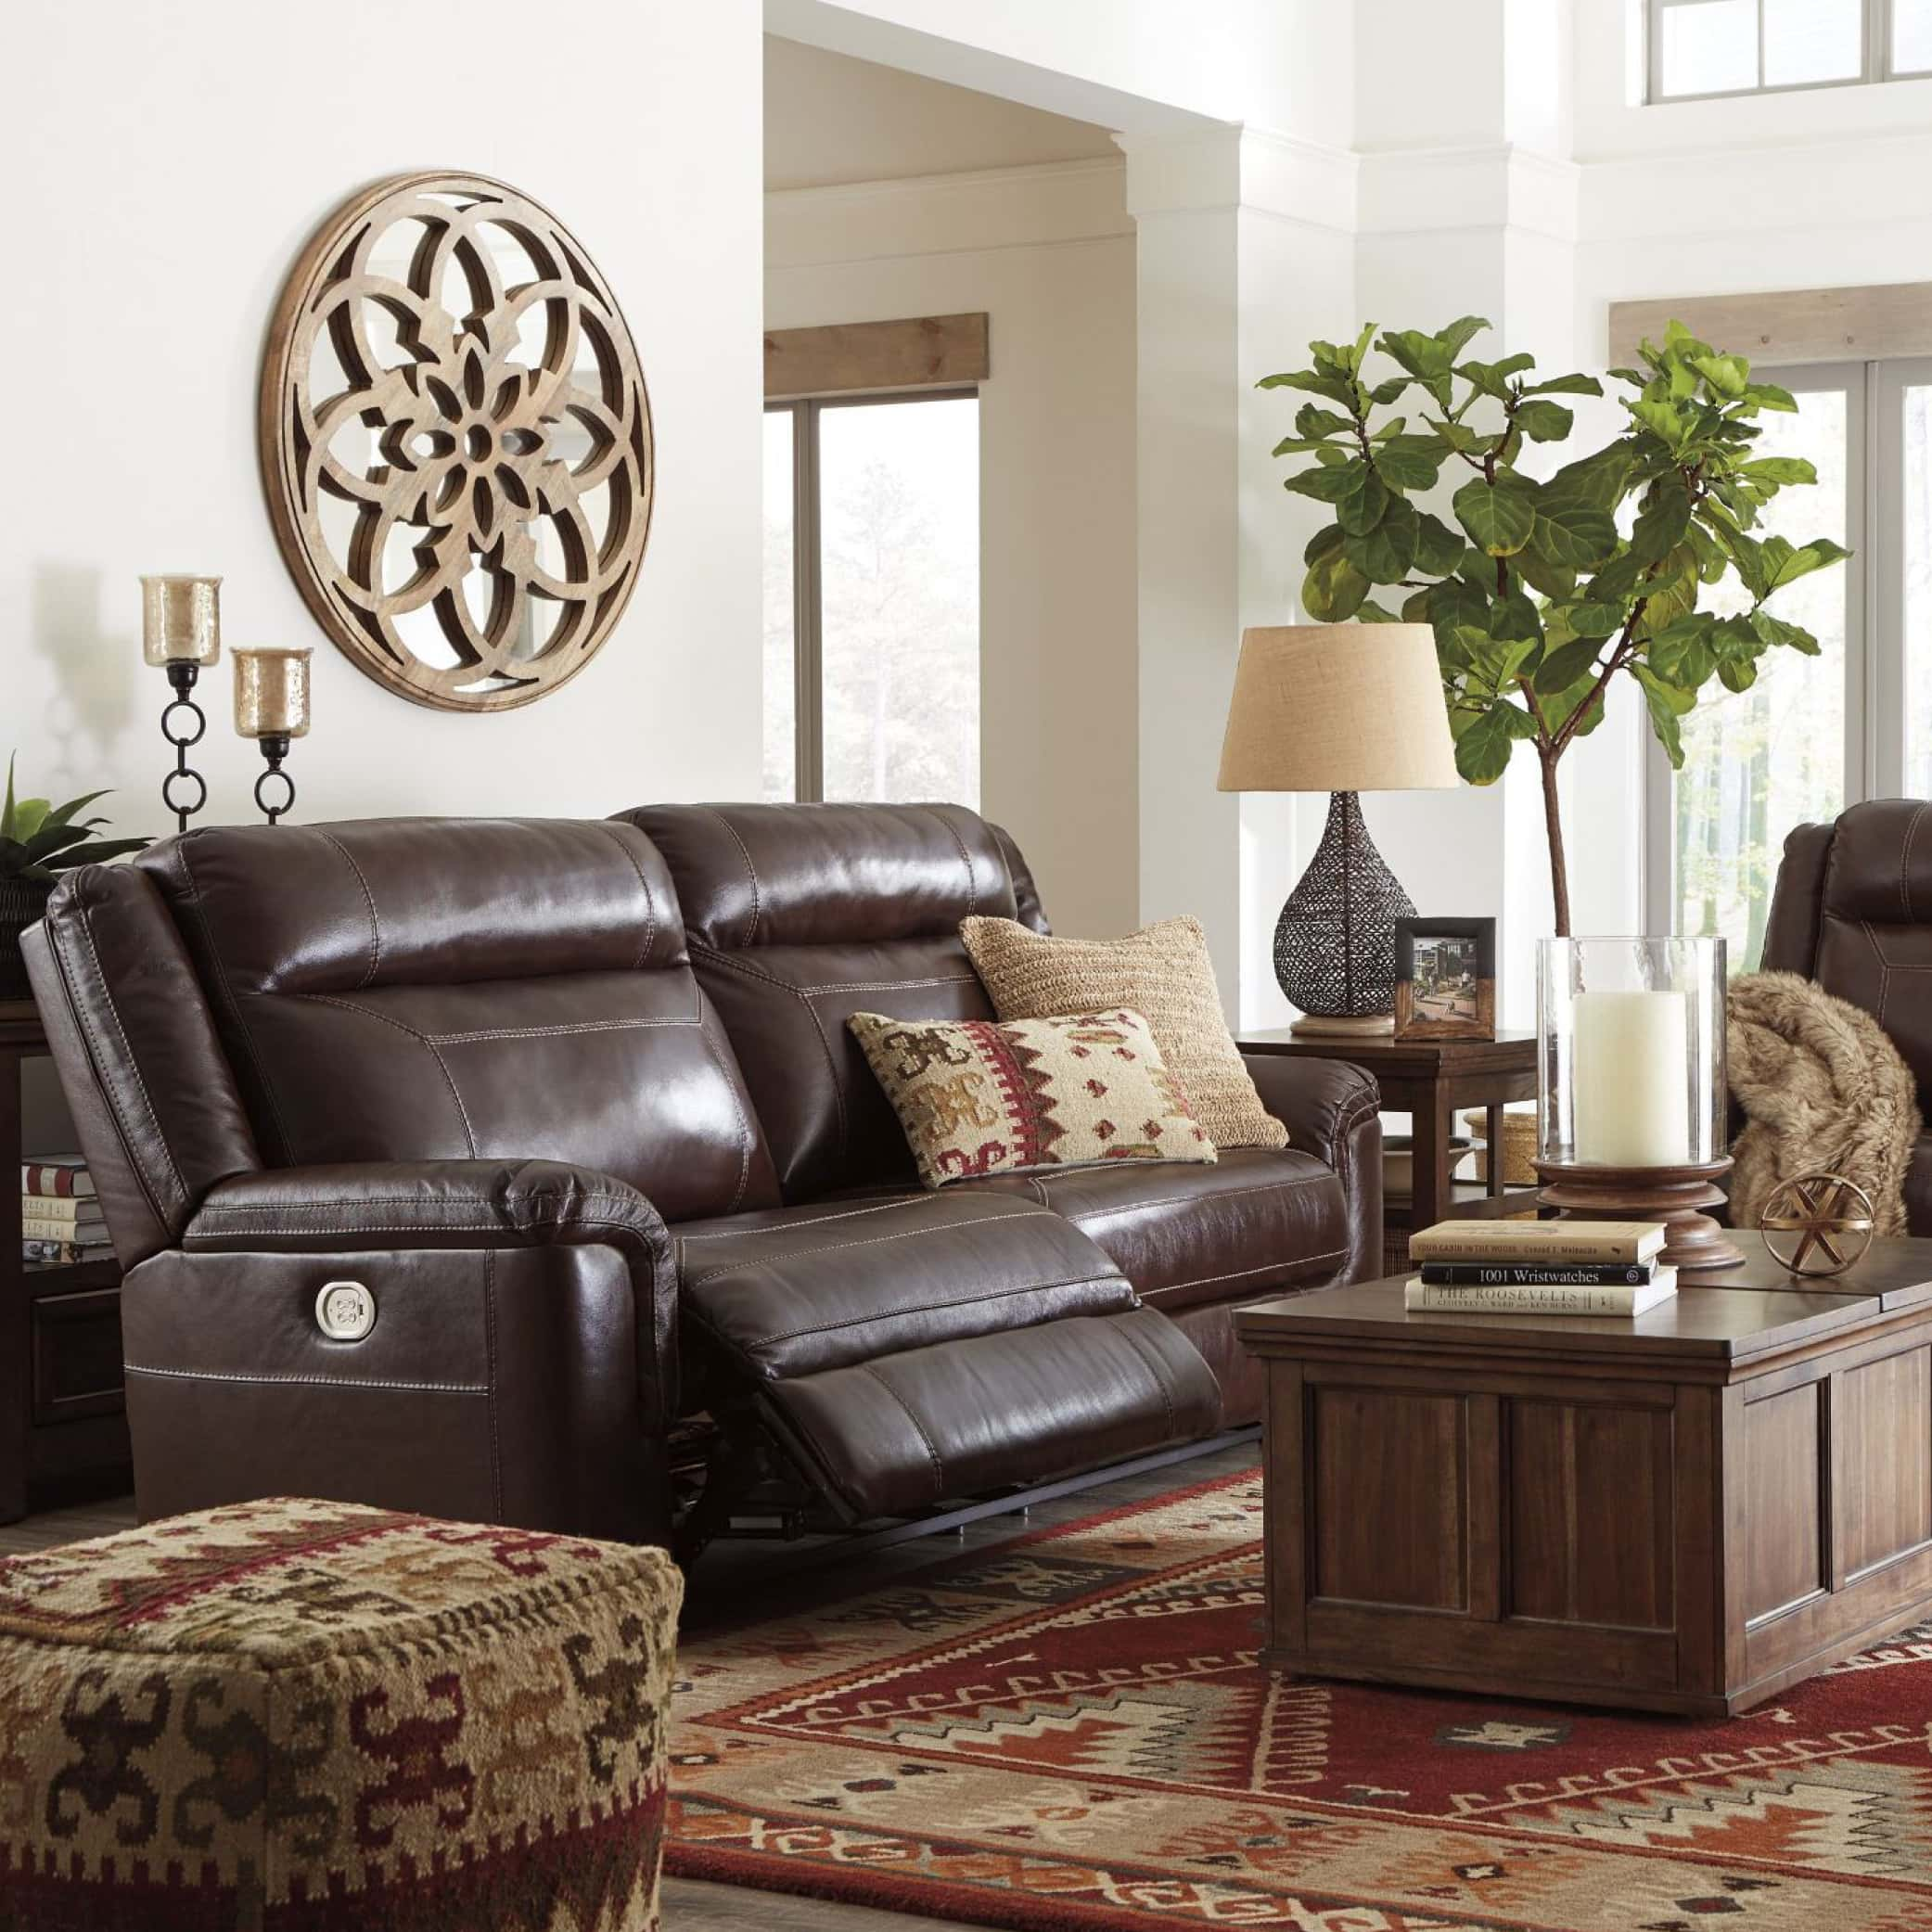 Coleman Furniture Online